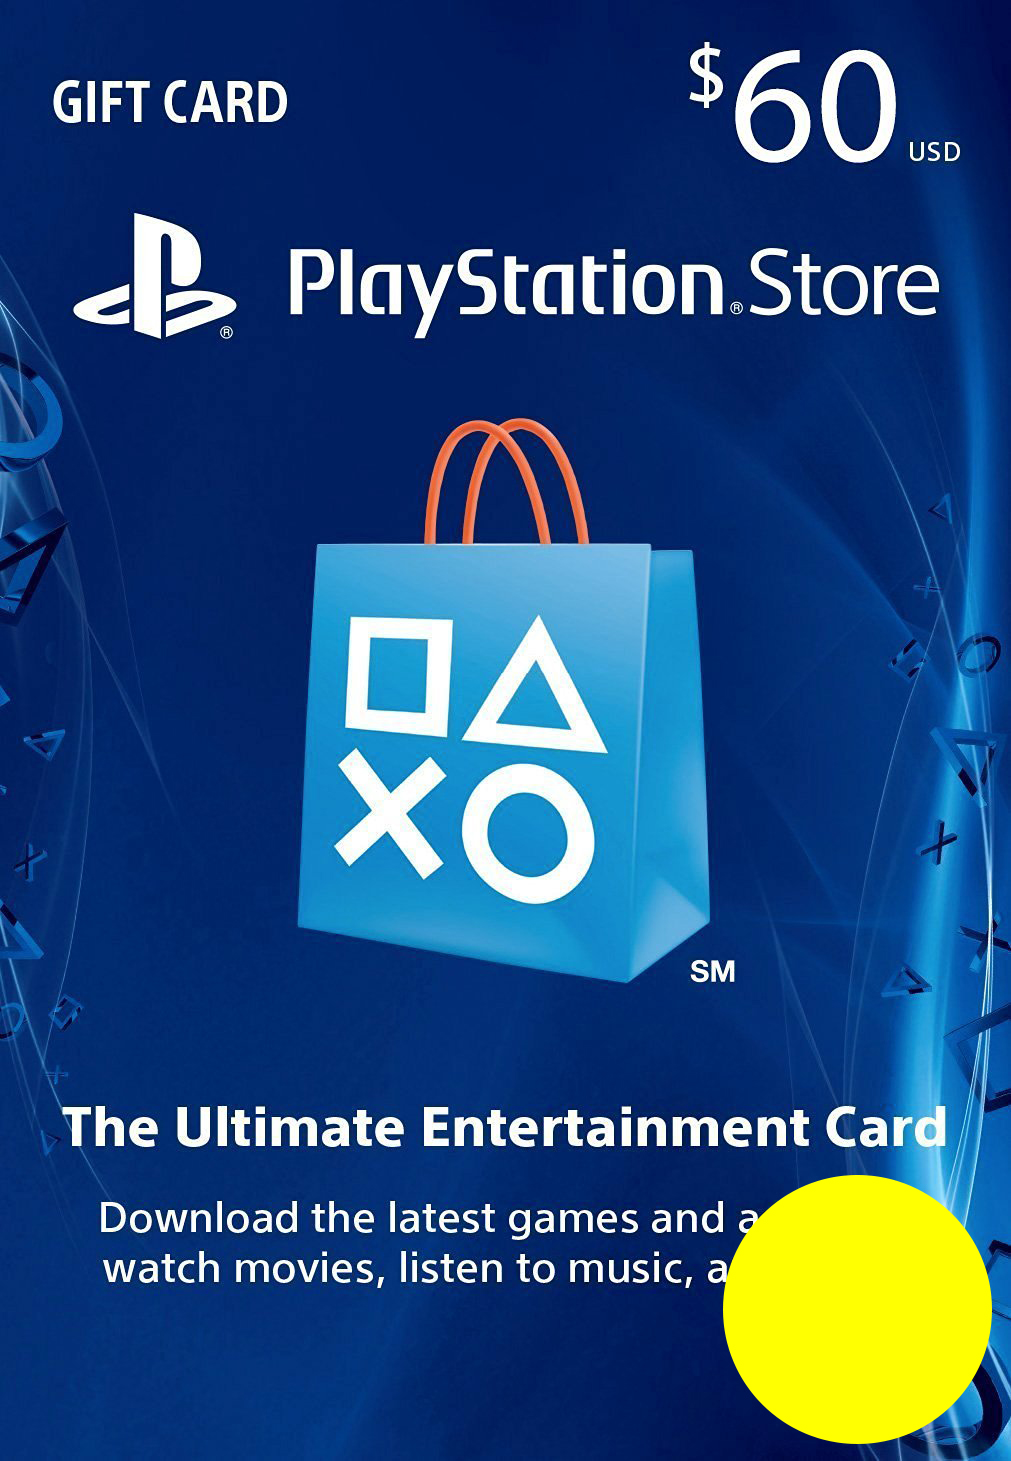 PSN Gift Card Code USA $60 PS4, PS3, PS Vita